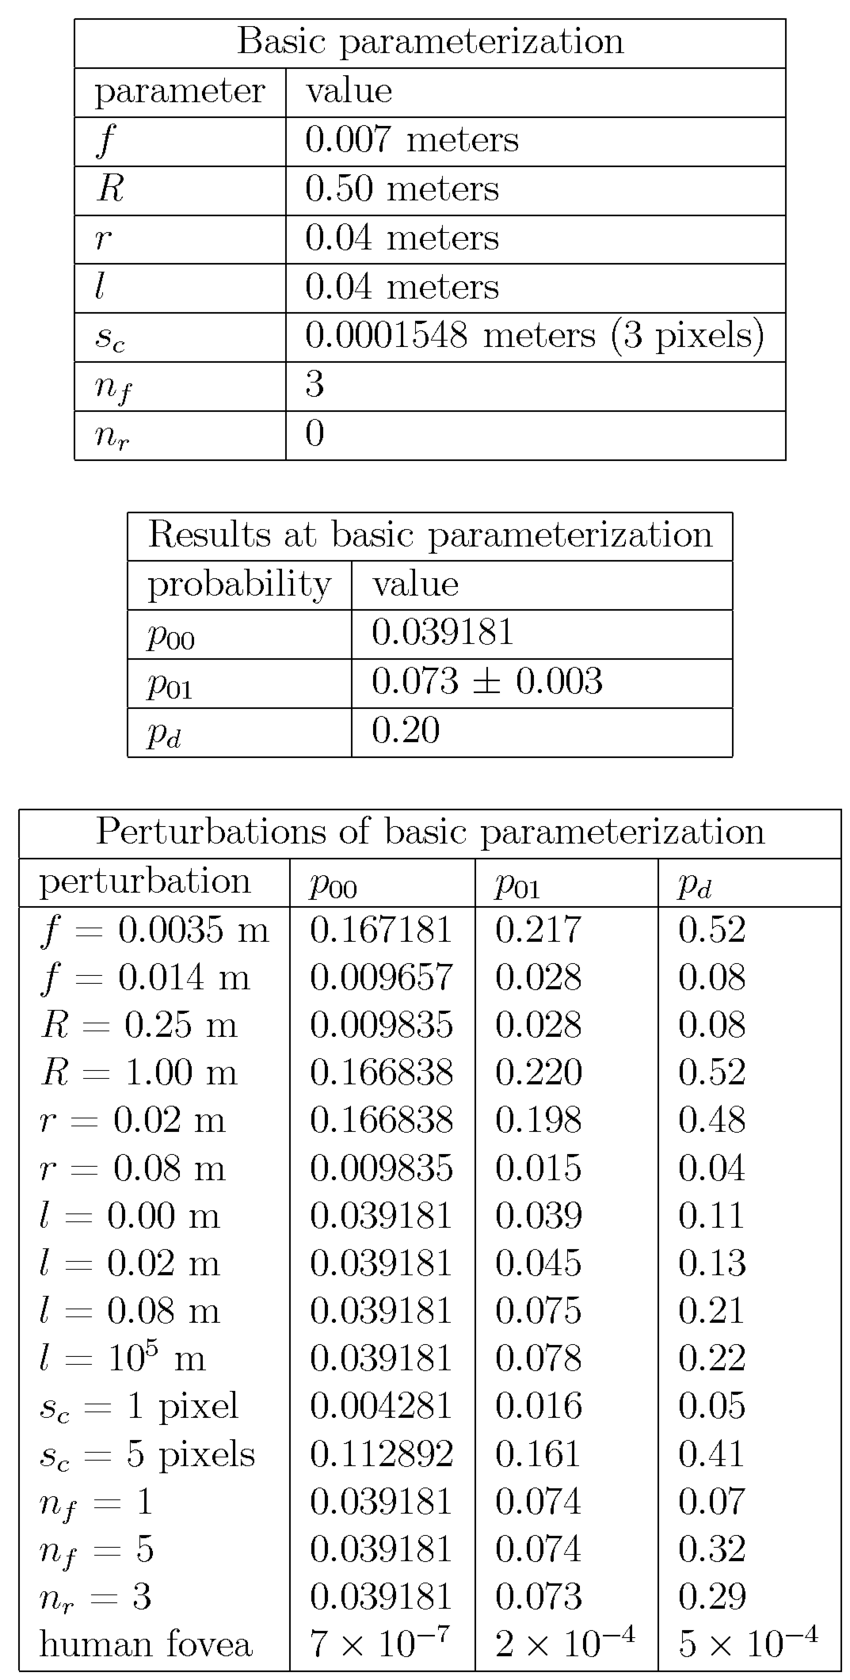 medium resolution of results for a tabletop vision system the basic parameterization corresponds to our experimental setup